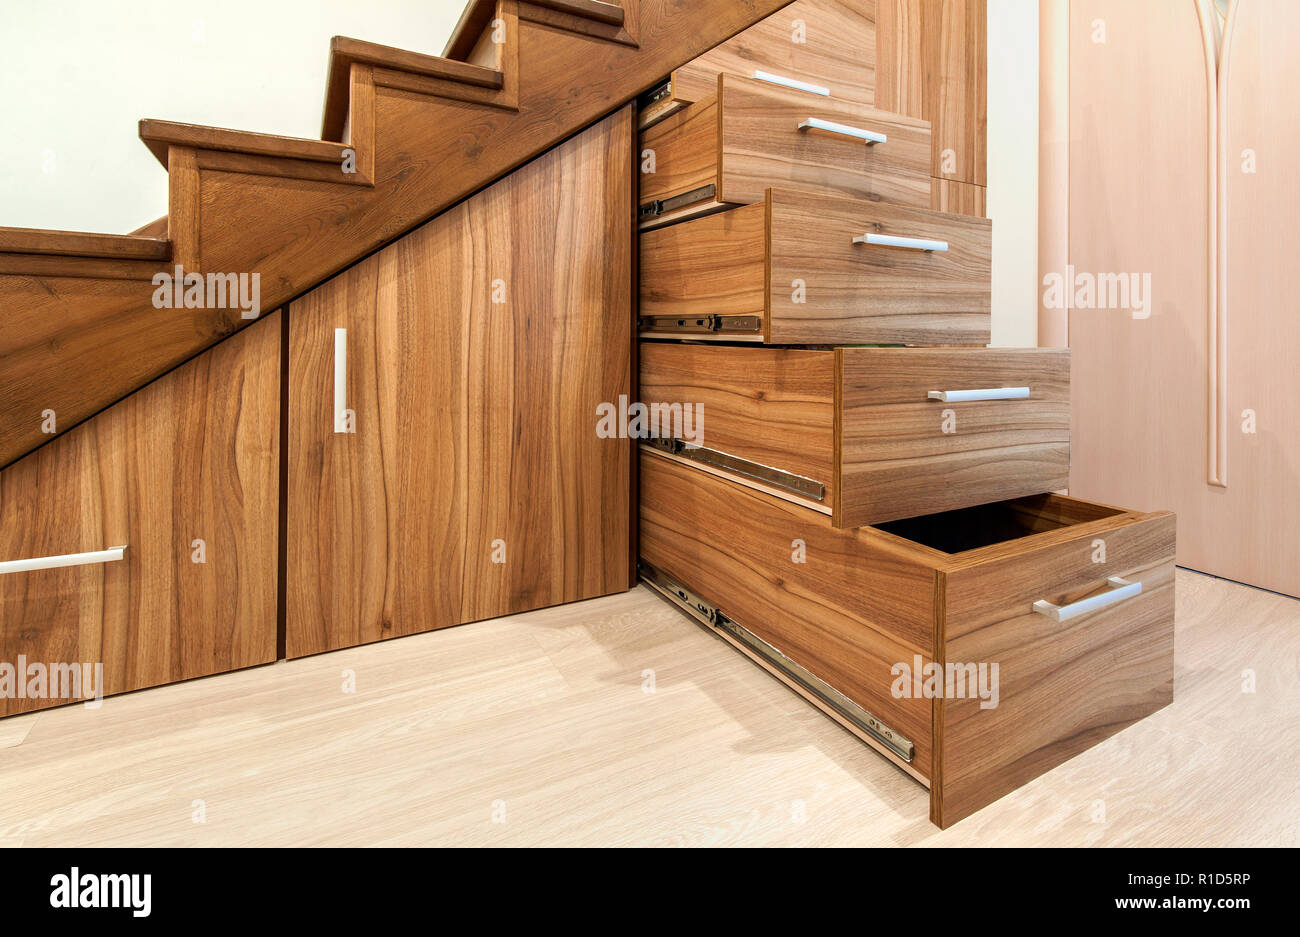 Modern architecture interior with luxury hallway with glossy wooden stairs in modern storey house custom built pullout cabinets on glides in slots u